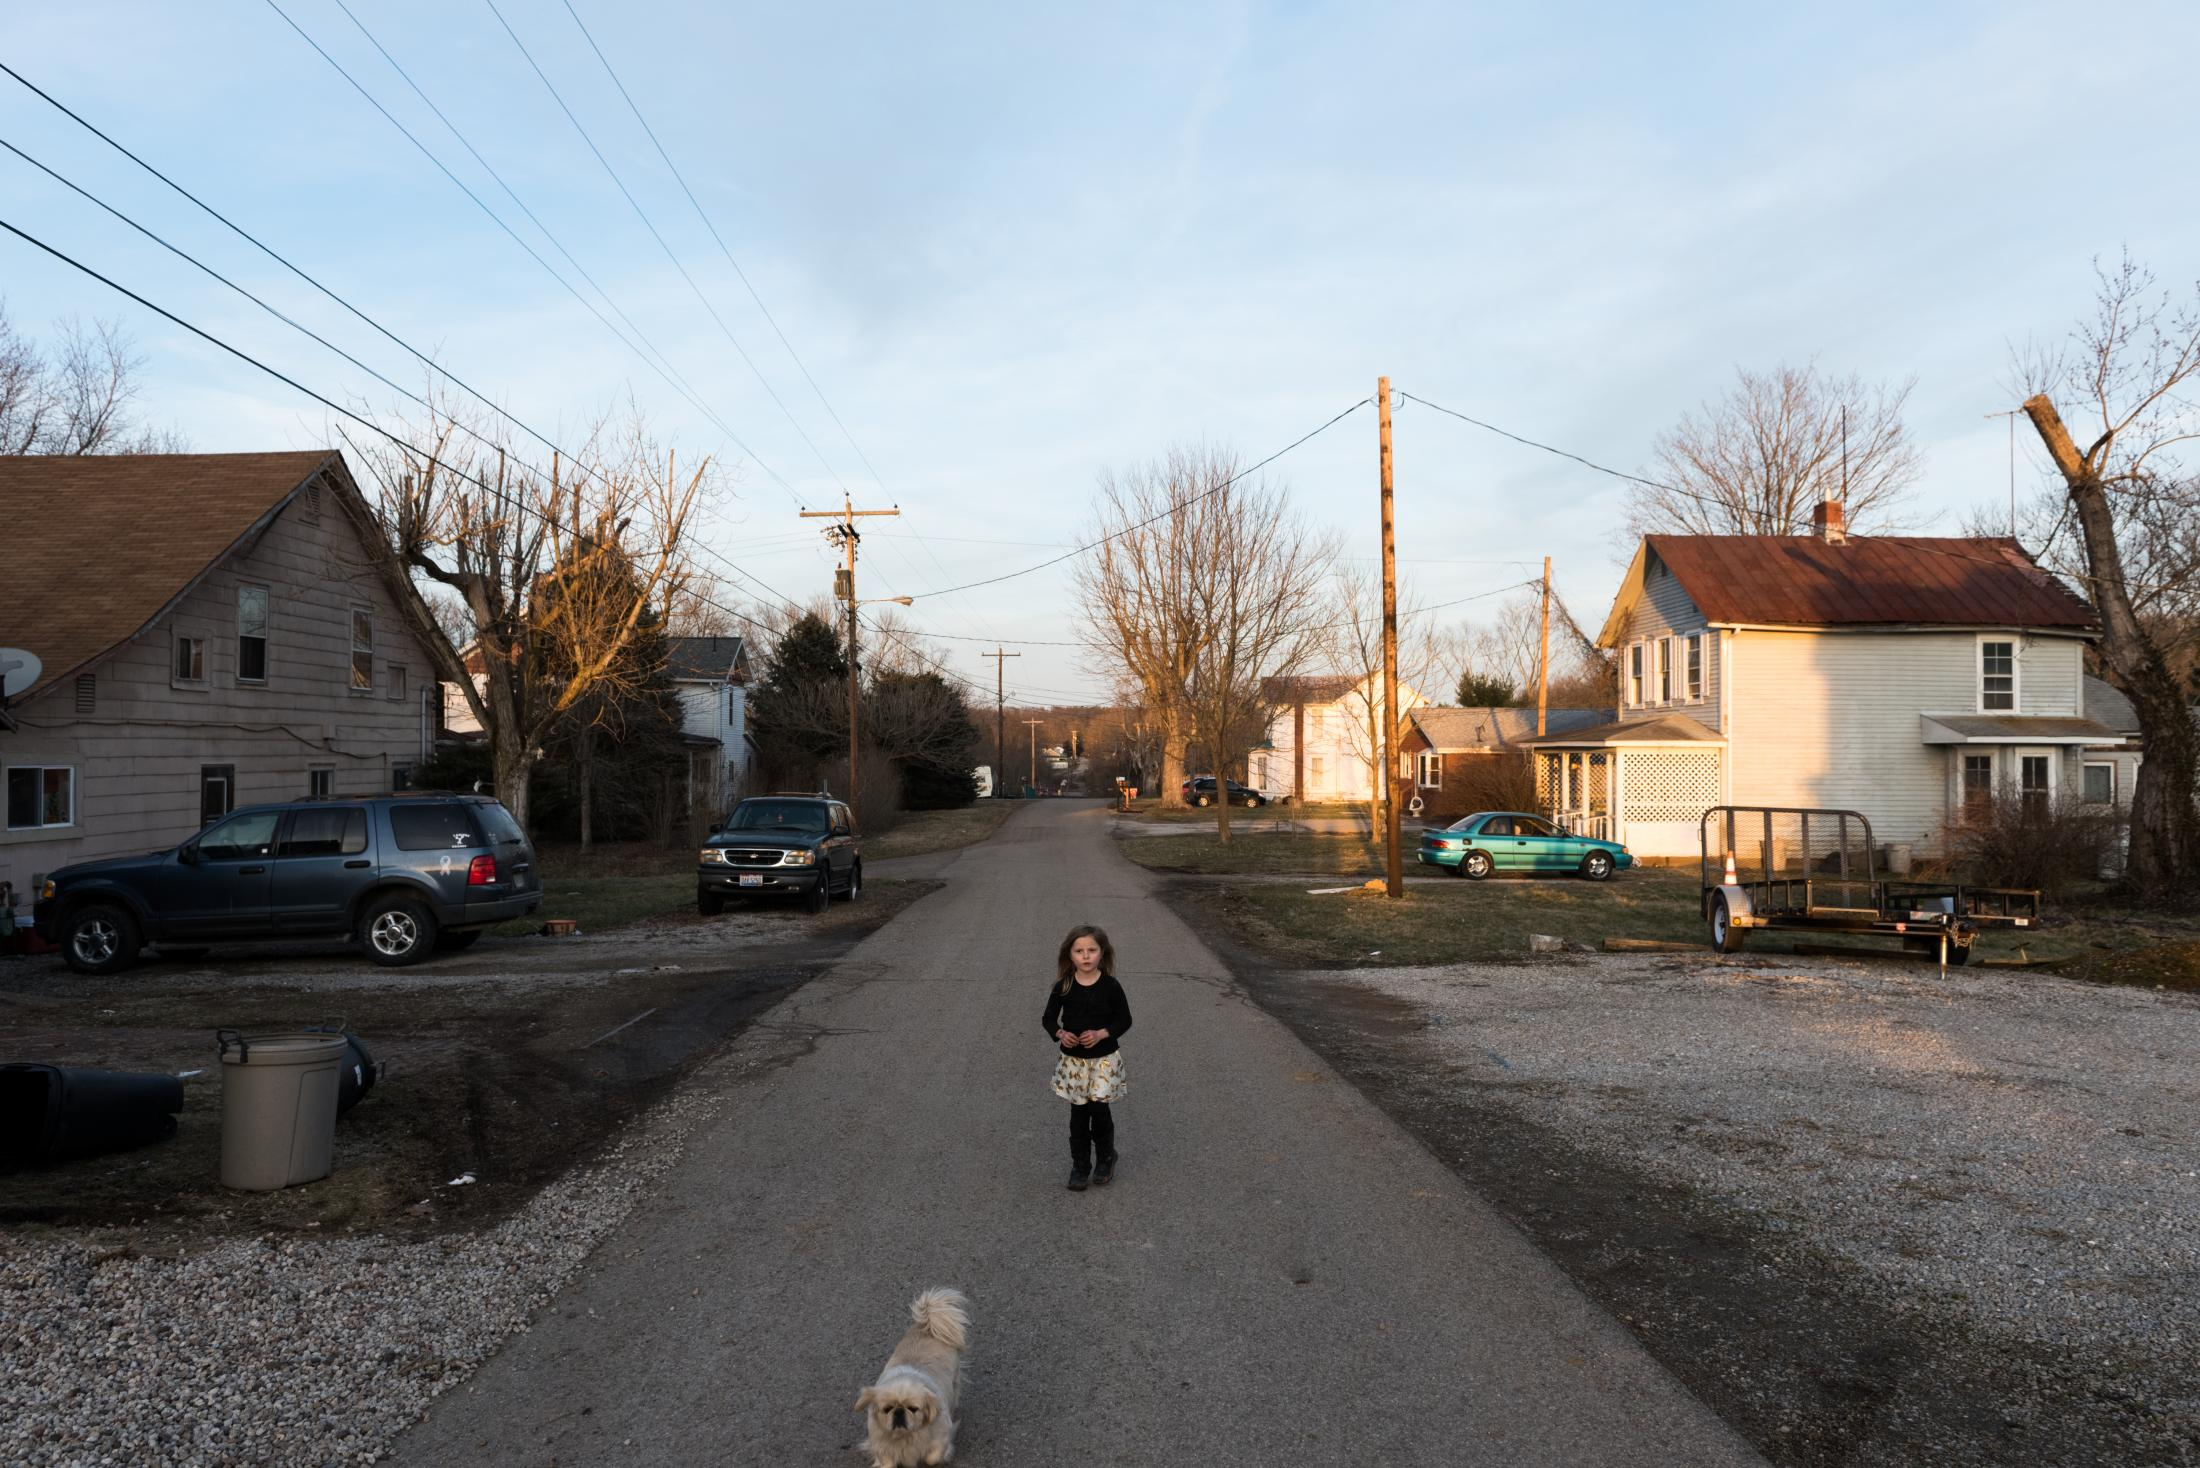 Chloe Harris, 6, walks down the street on a February afternoon in Coolville, Ohio.